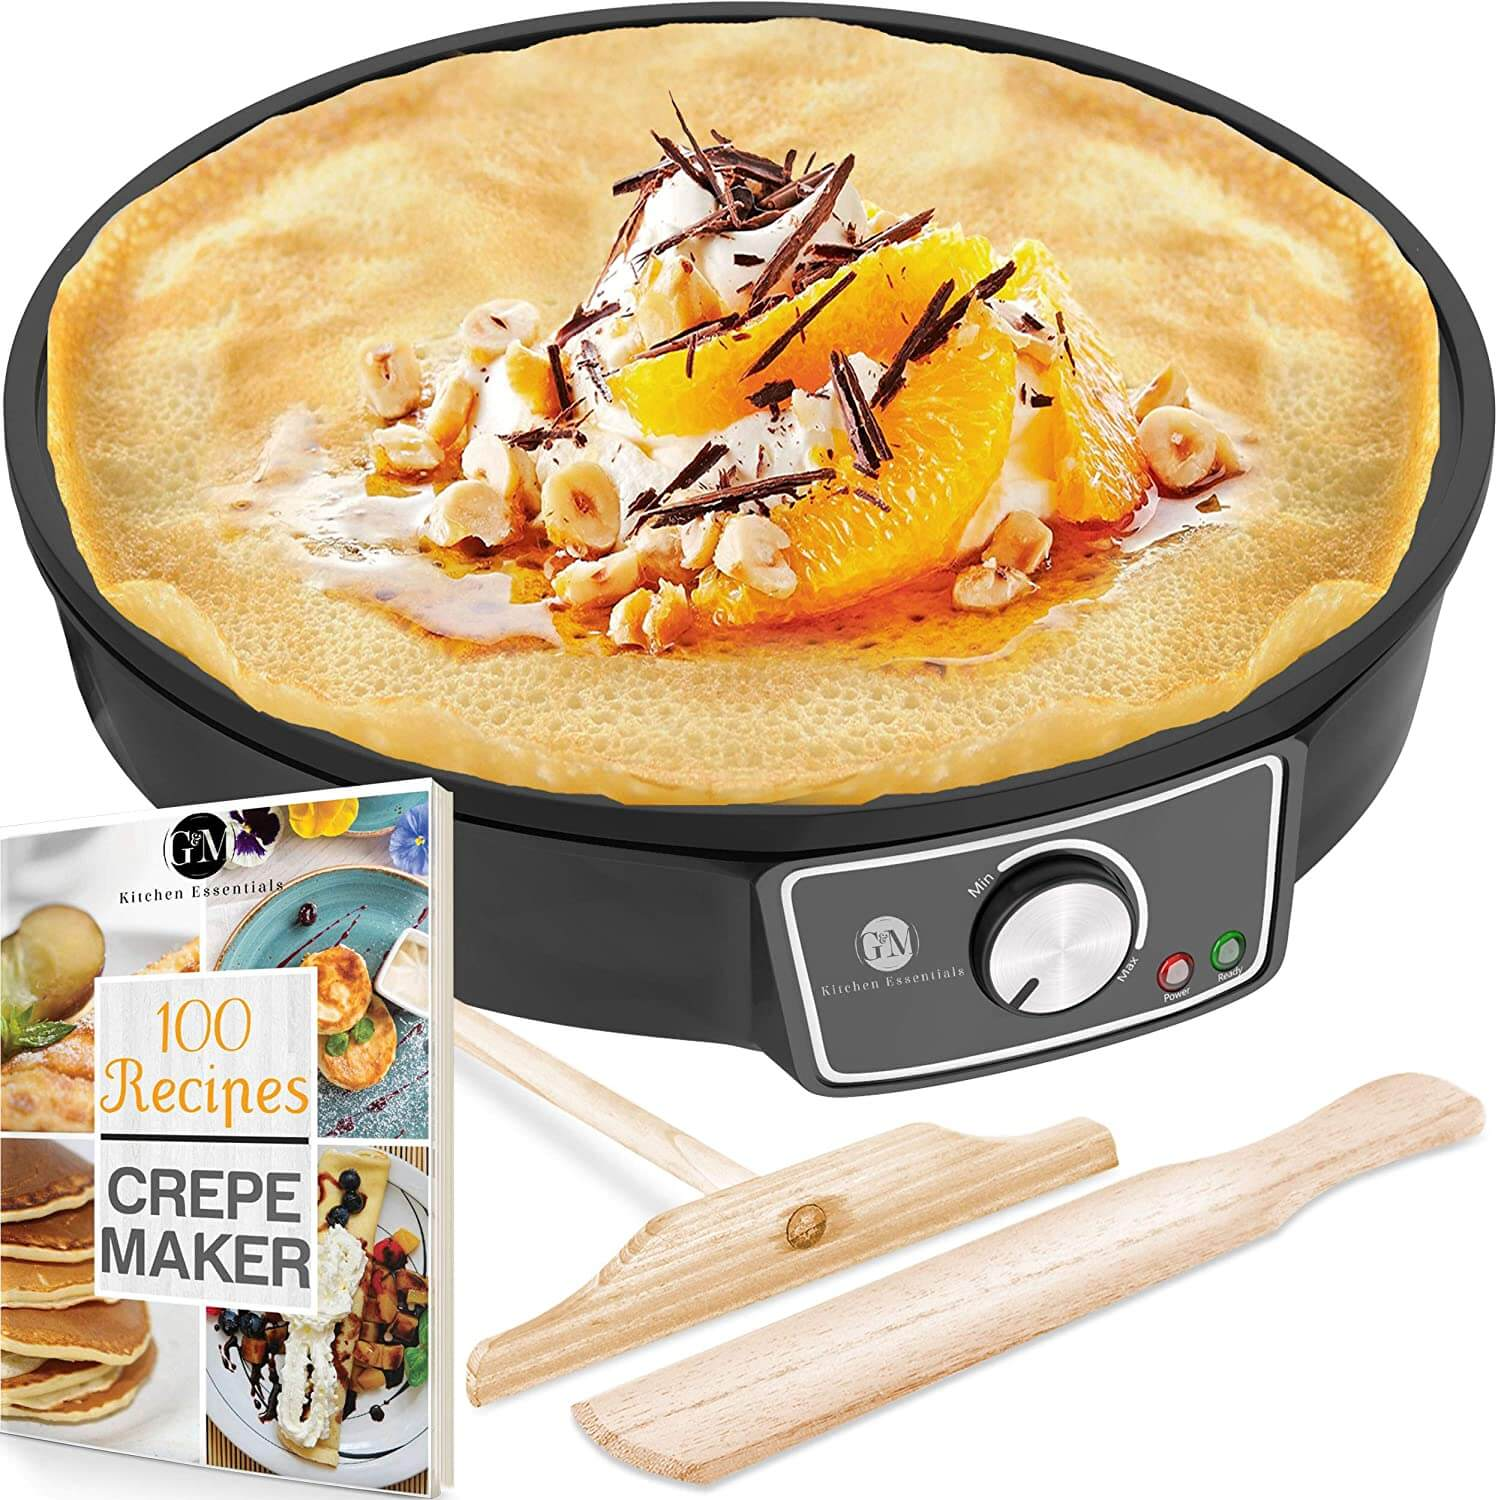 G&M Kitchen Essentials Electric Griddle